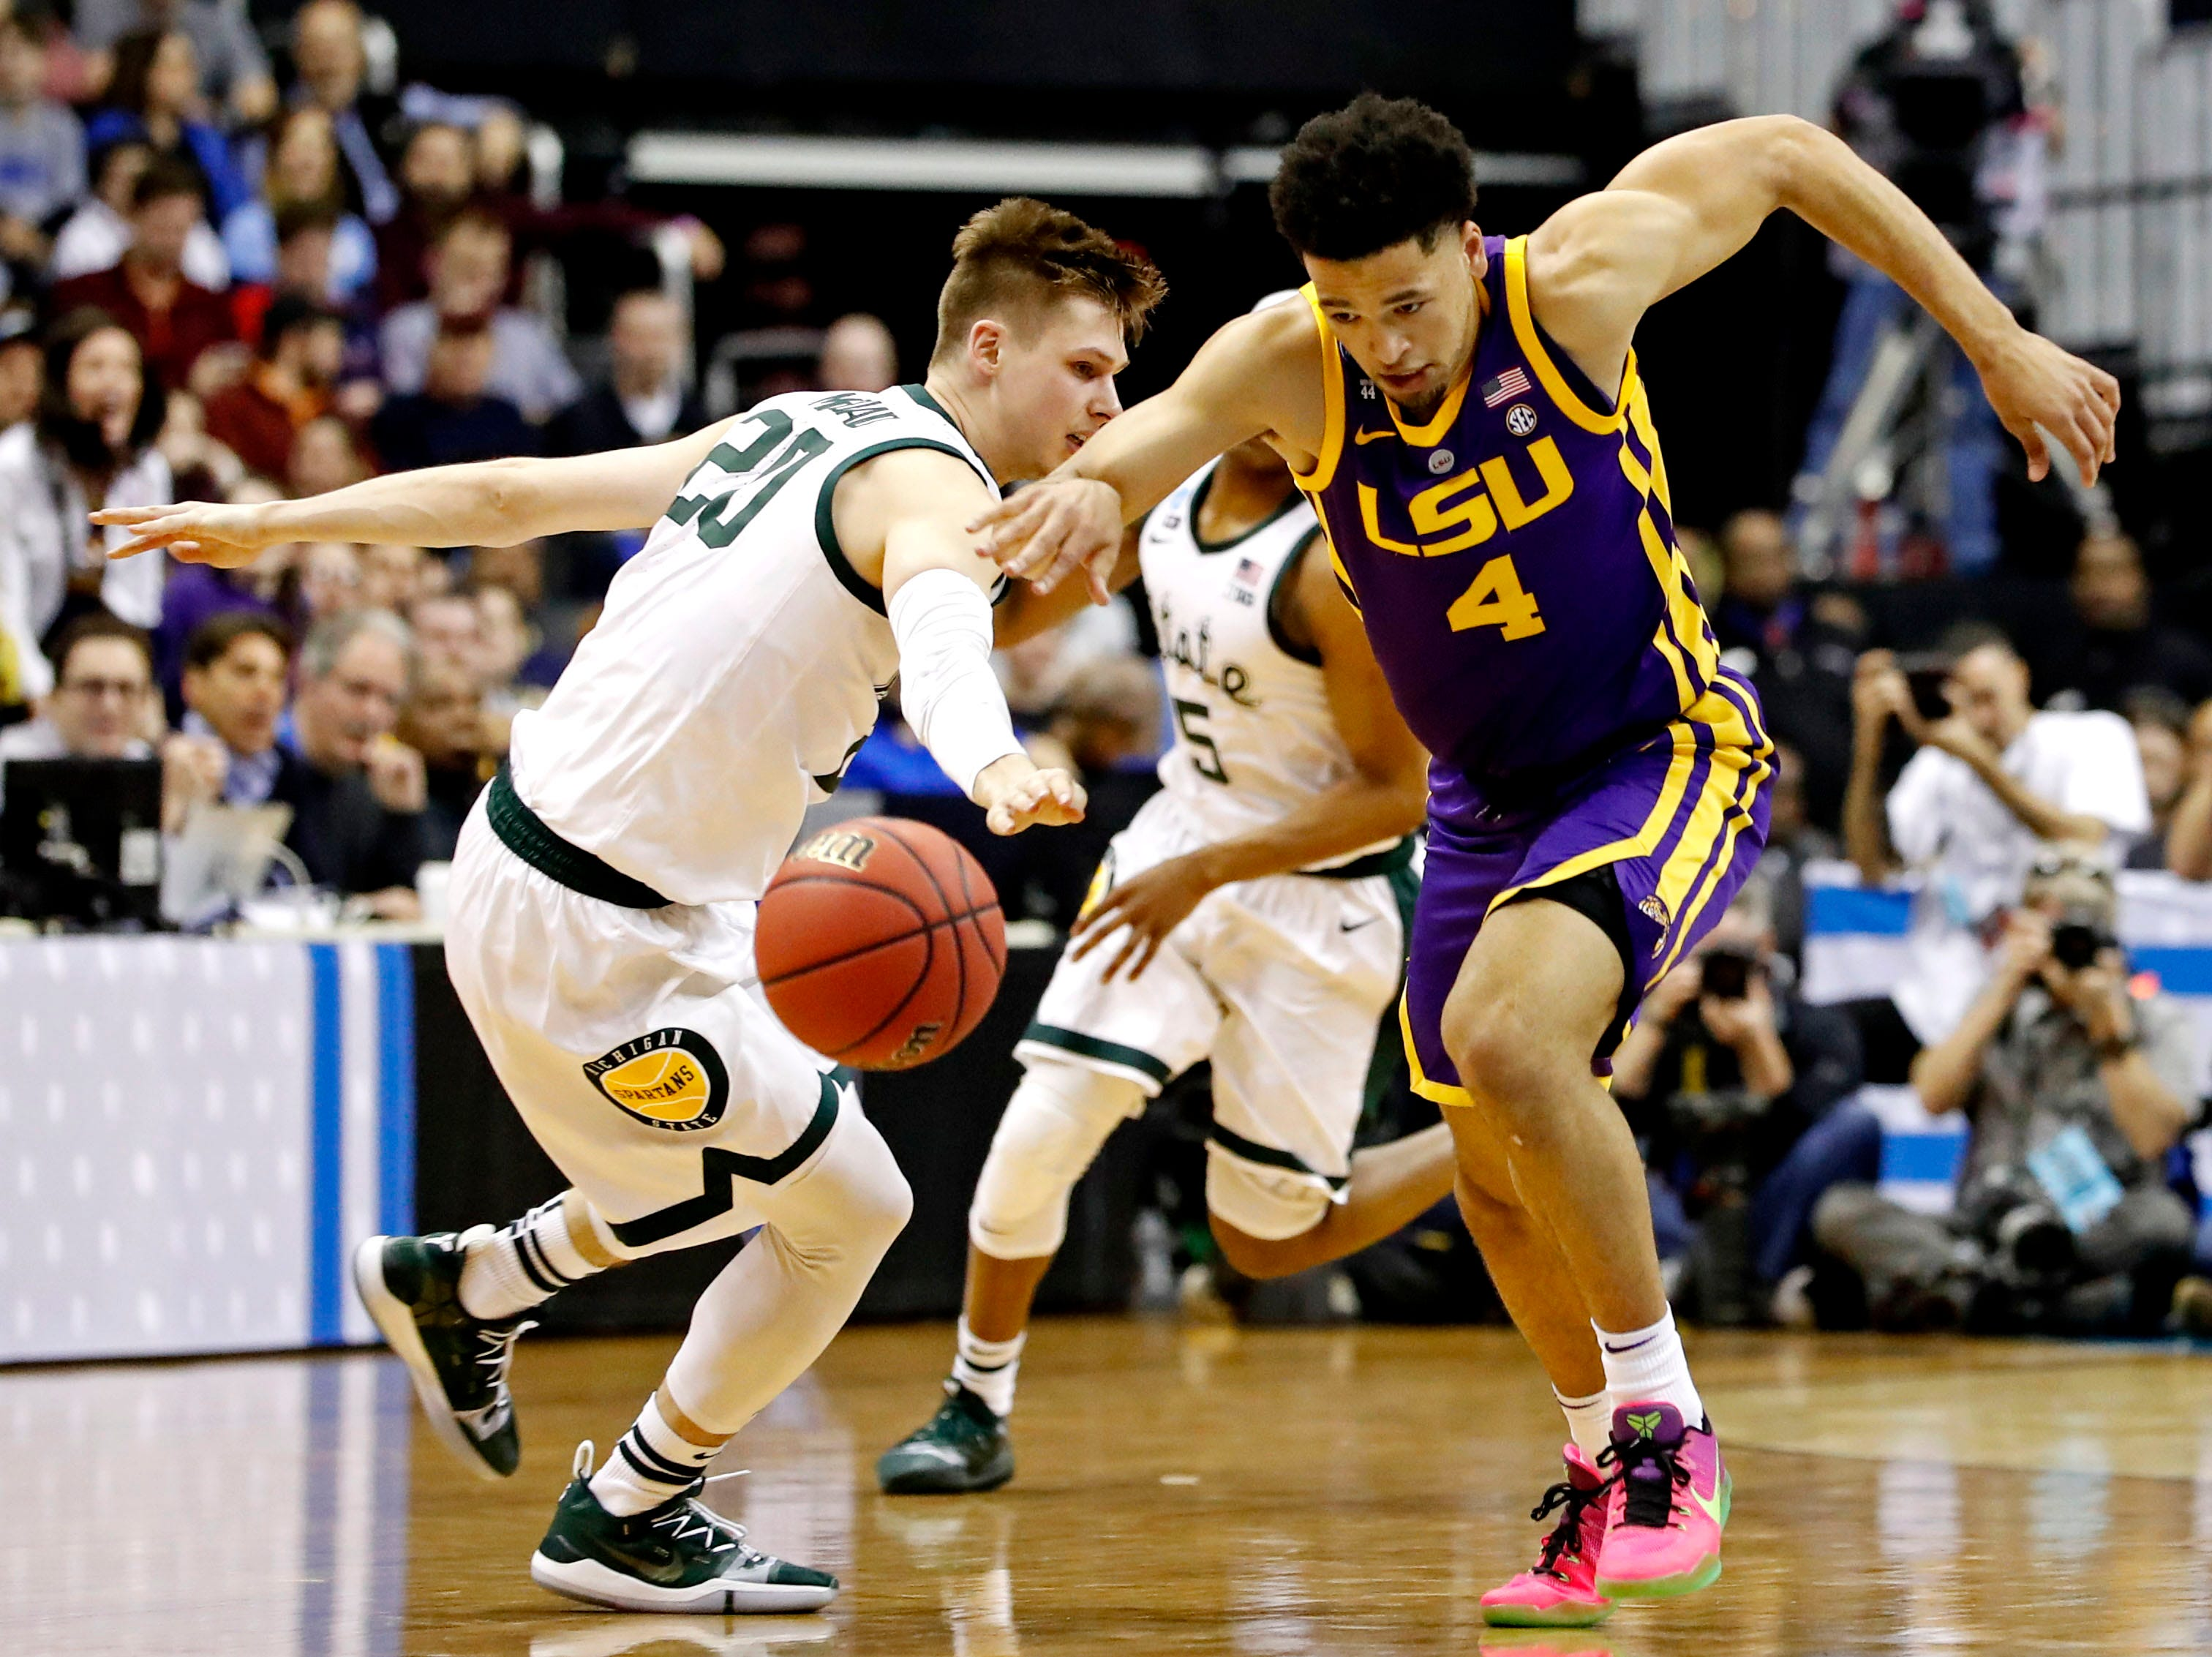 Mar 29, 2019; Washington, DC, USA; LSU Tigers guard Skylar Mays (4) brings the ball up court against Michigan State Spartans guard Matt McQuaid (20) during the first half in the semifinals of the east regional of the 2019 NCAA Tournament at Capital One Arena. Mandatory Credit: Geoff Burke-USA TODAY Sports